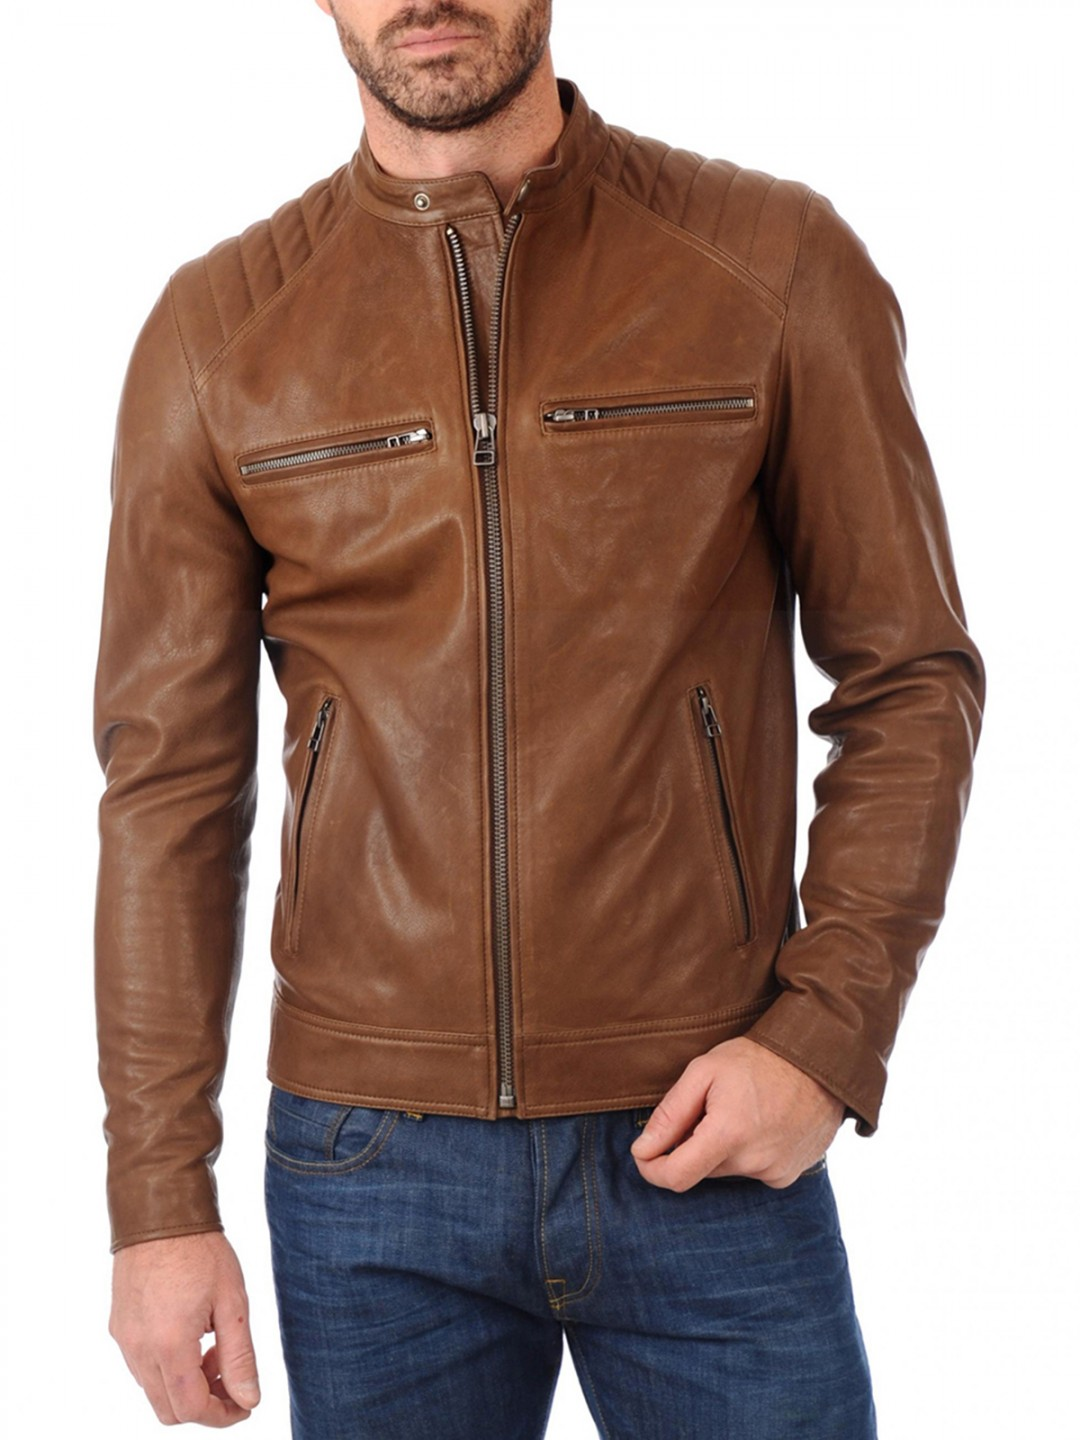 Classic Mens Brown Biker Real Leather Jacket - Samish Leather